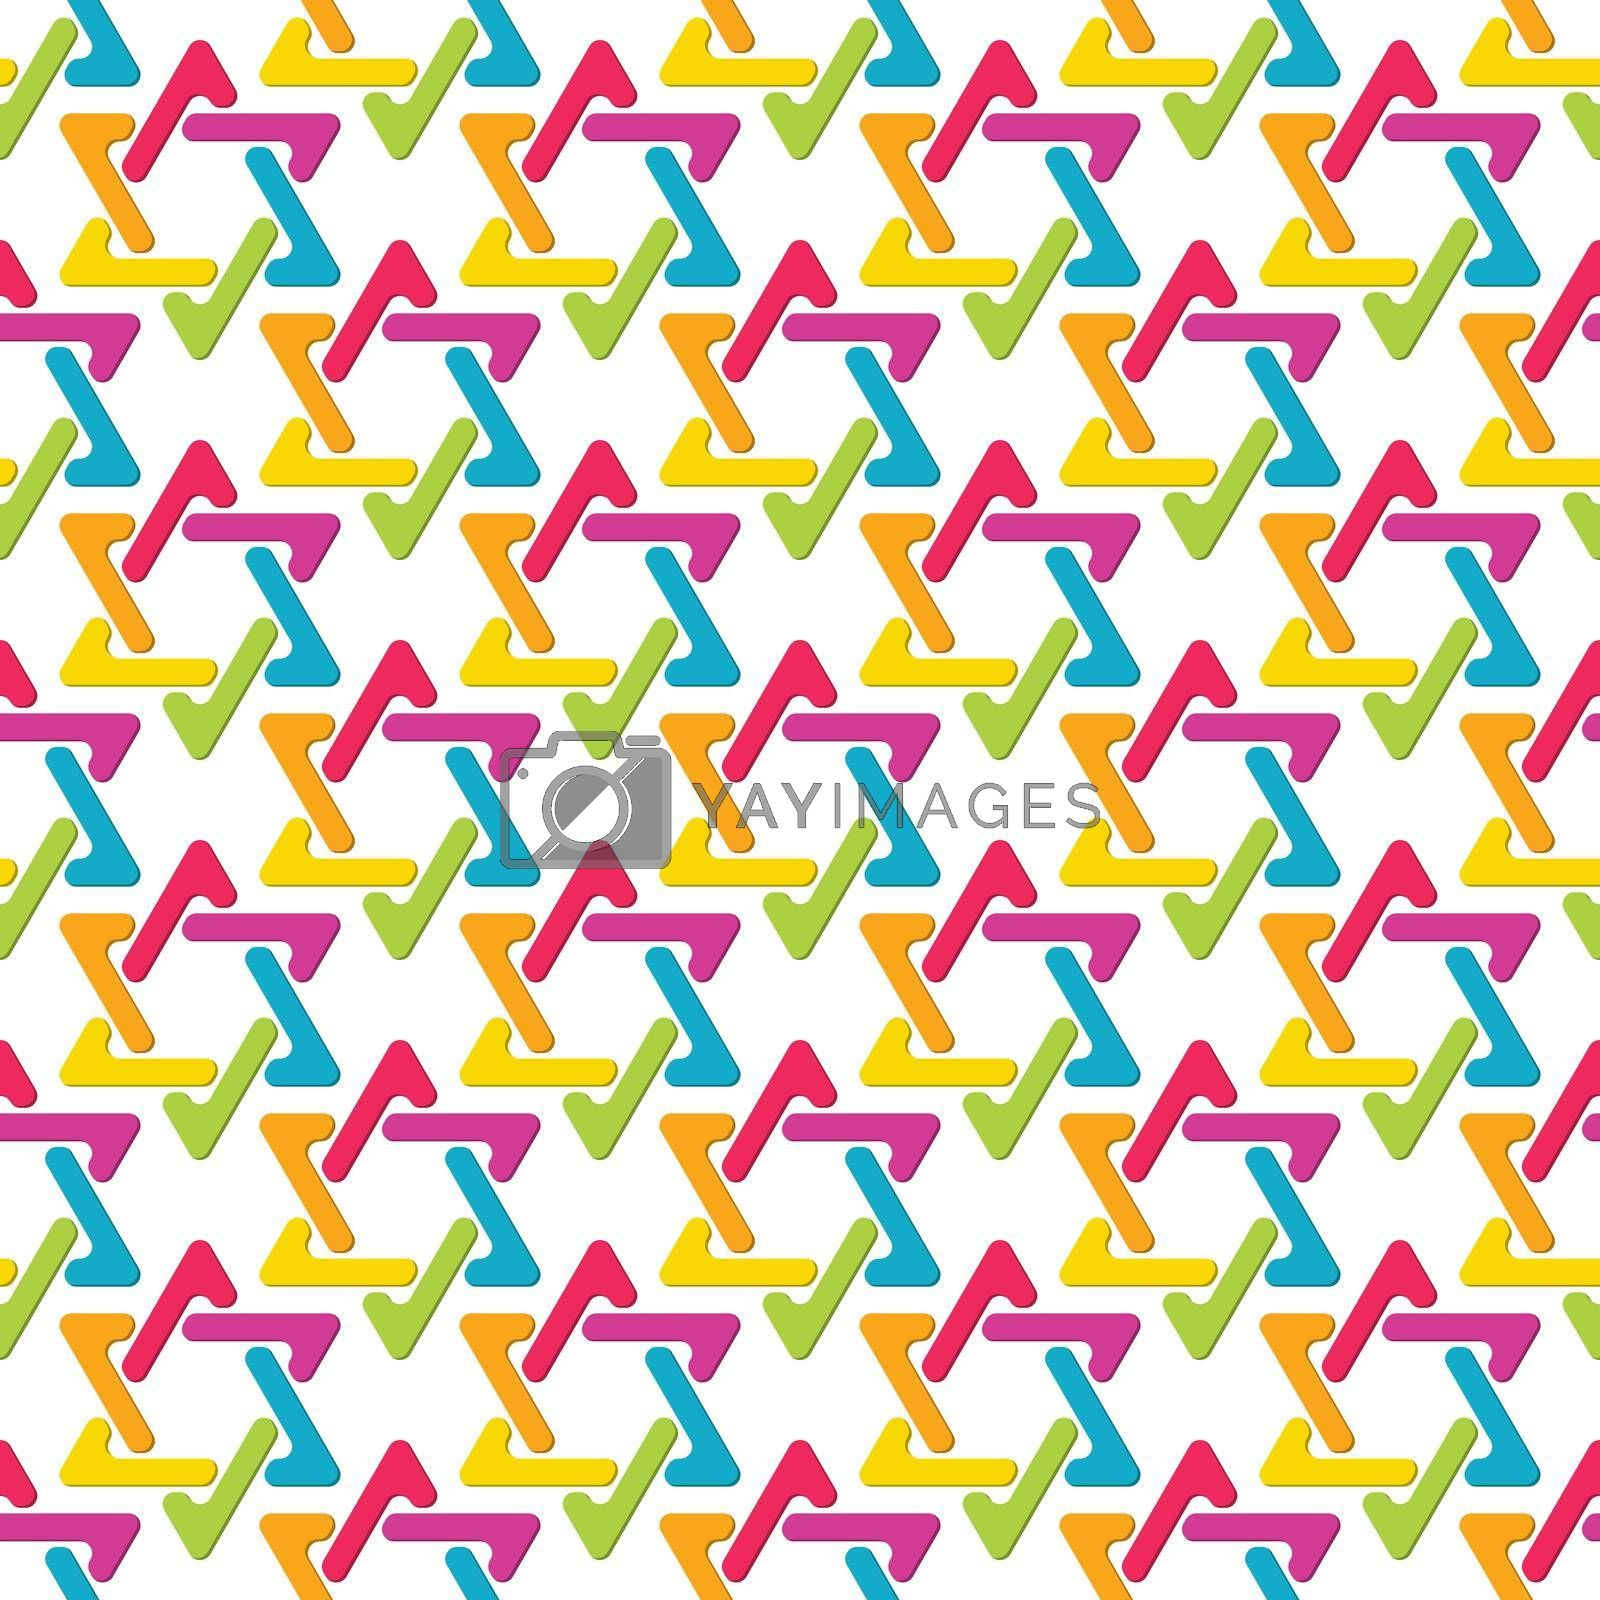 Seamless color pattern of interlocking triangles. Template for textures, textiles, and simple backgrounds. Simple style